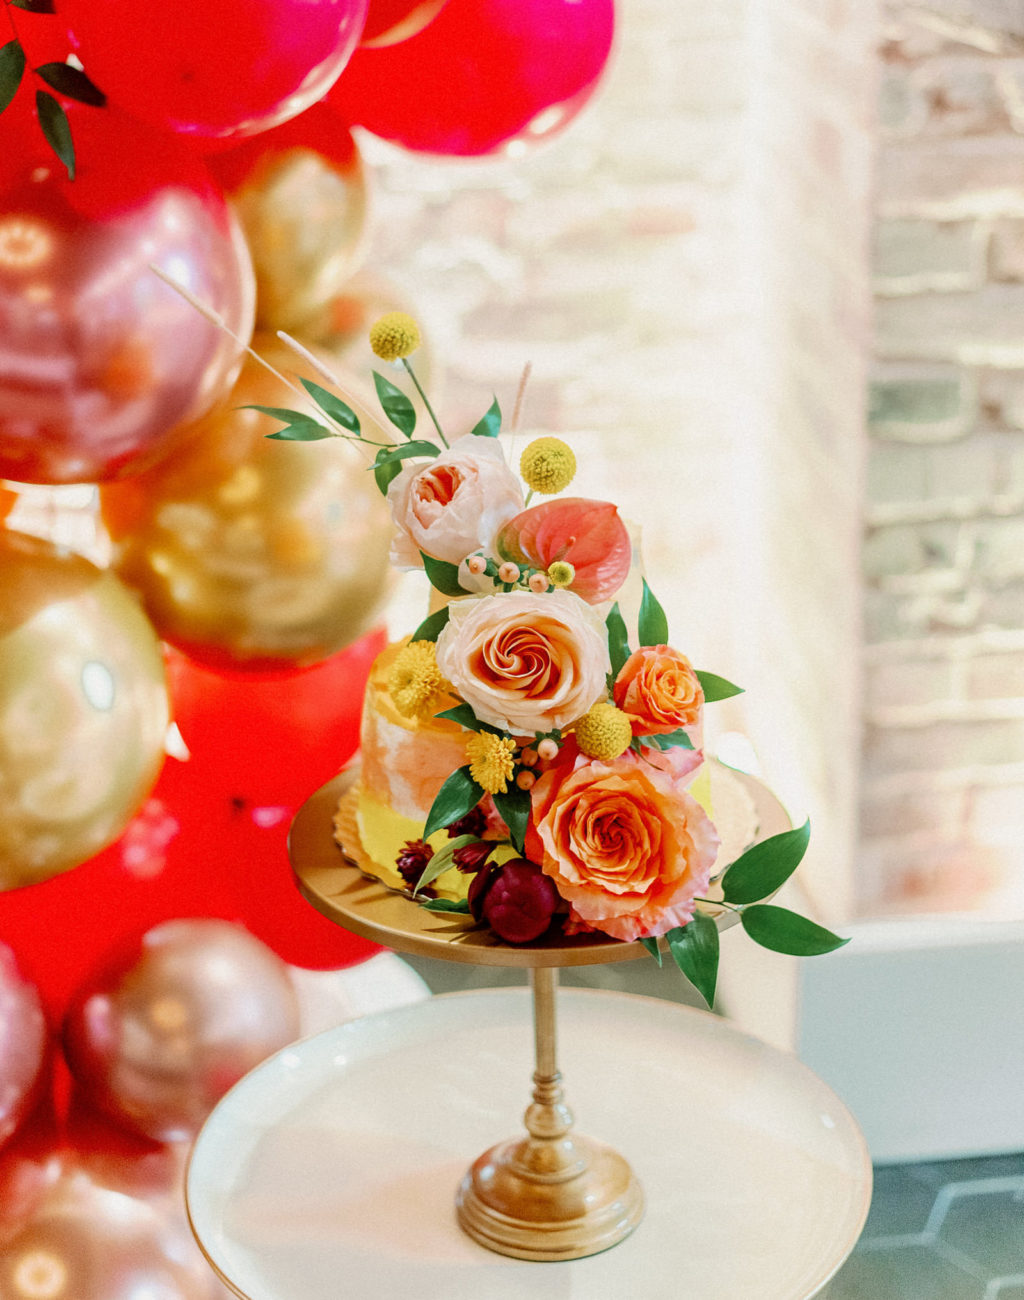 Whimsical and Colorful Yellow and Orange Small Two Tier Wedding Cake with Real Blush Pink and Orange Roses, Yellow Billy Ball Flowers   Tampa Bay Wedding Photographer Dewitt for Love